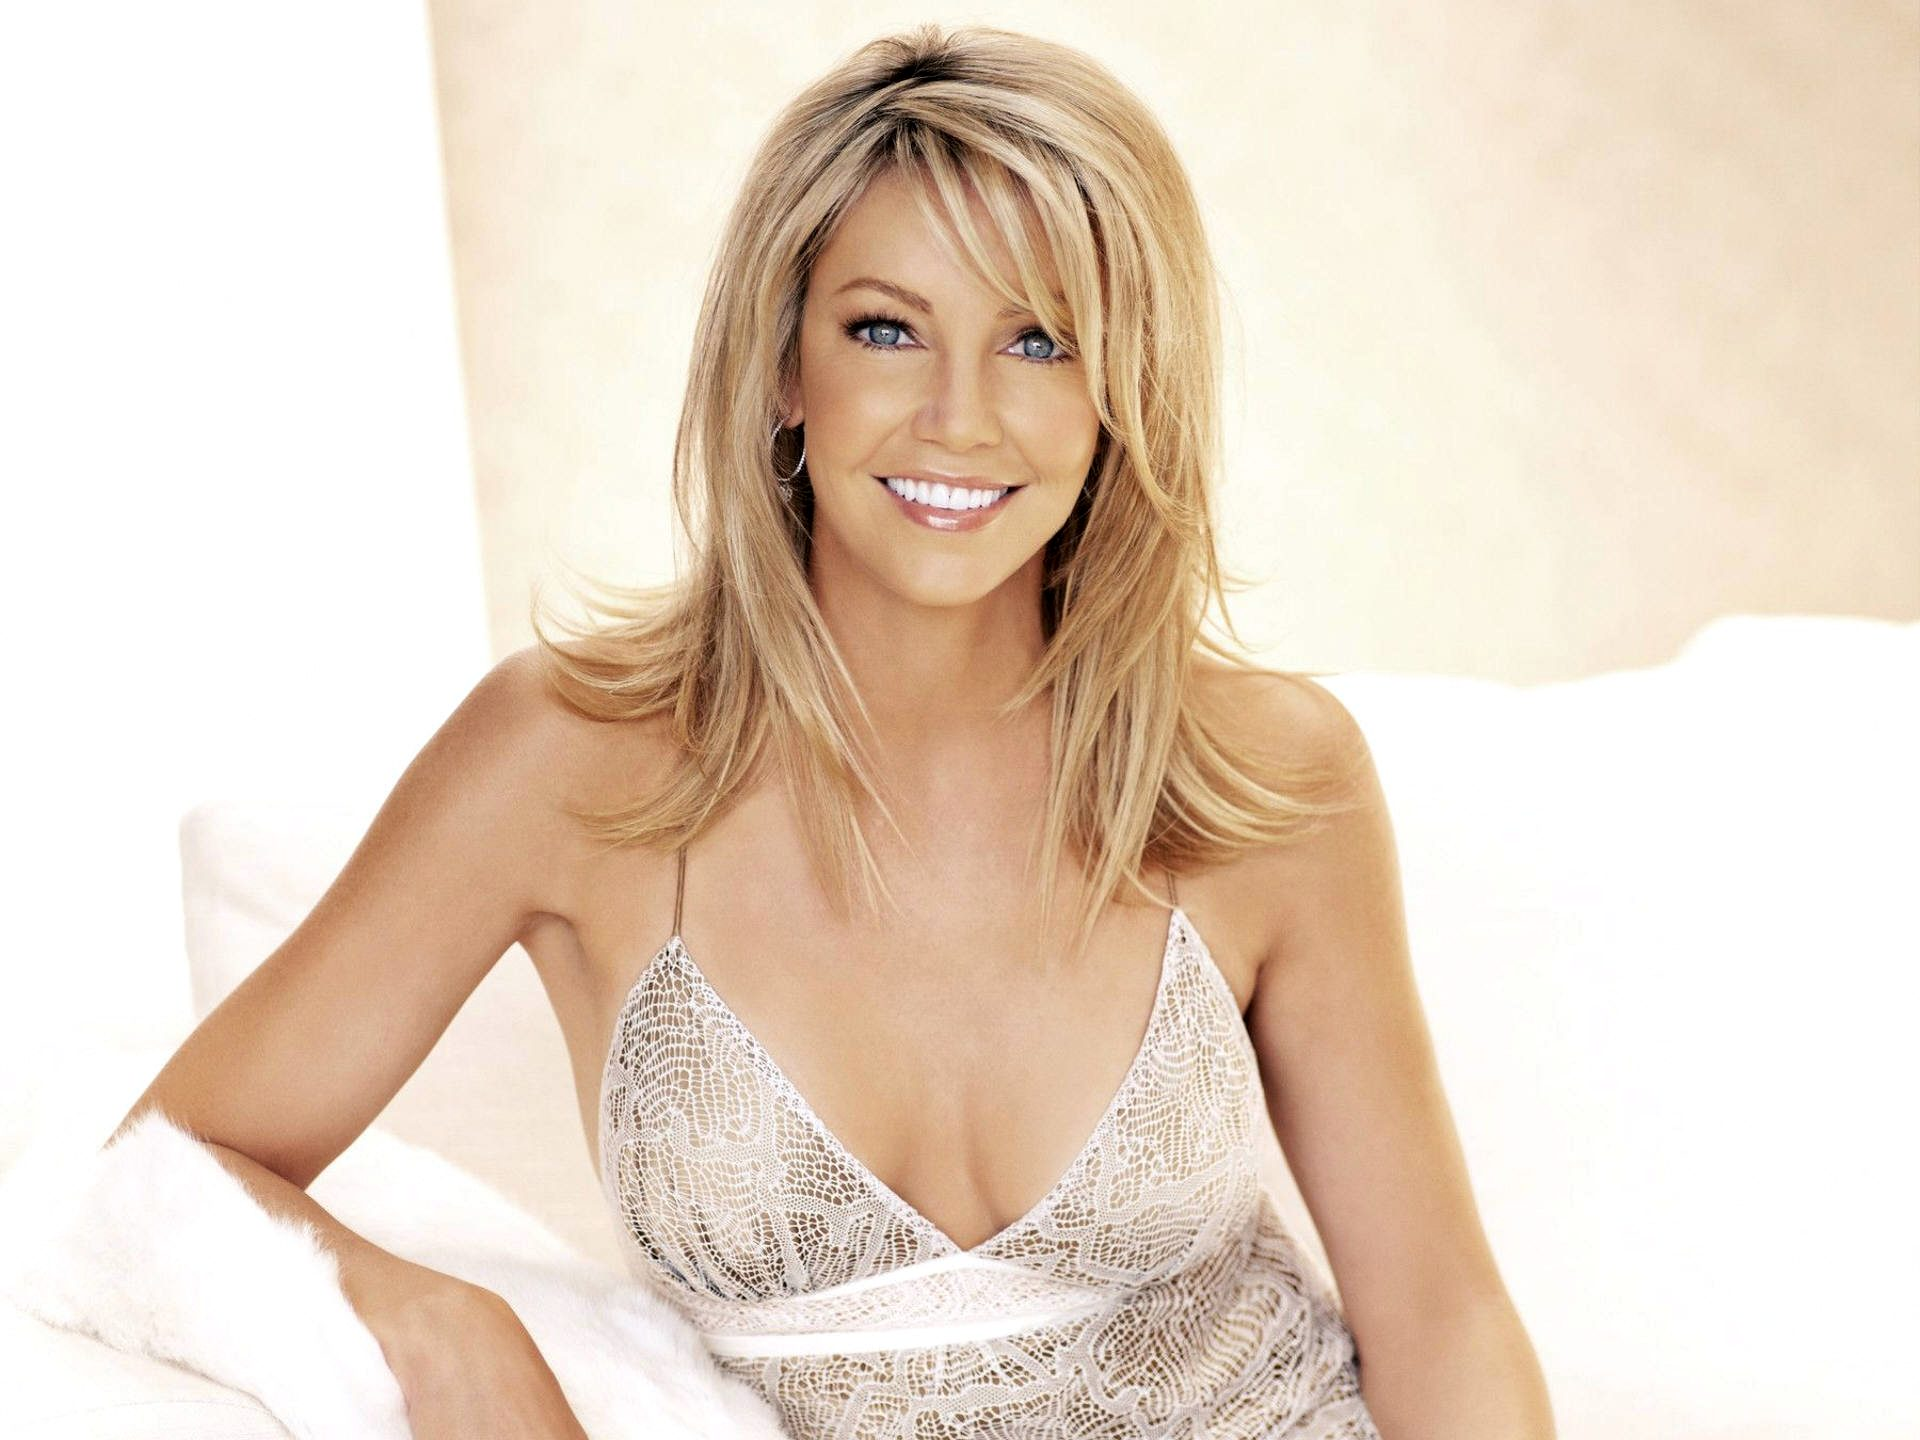 1920x1440 - Heather Locklear Wallpapers 3